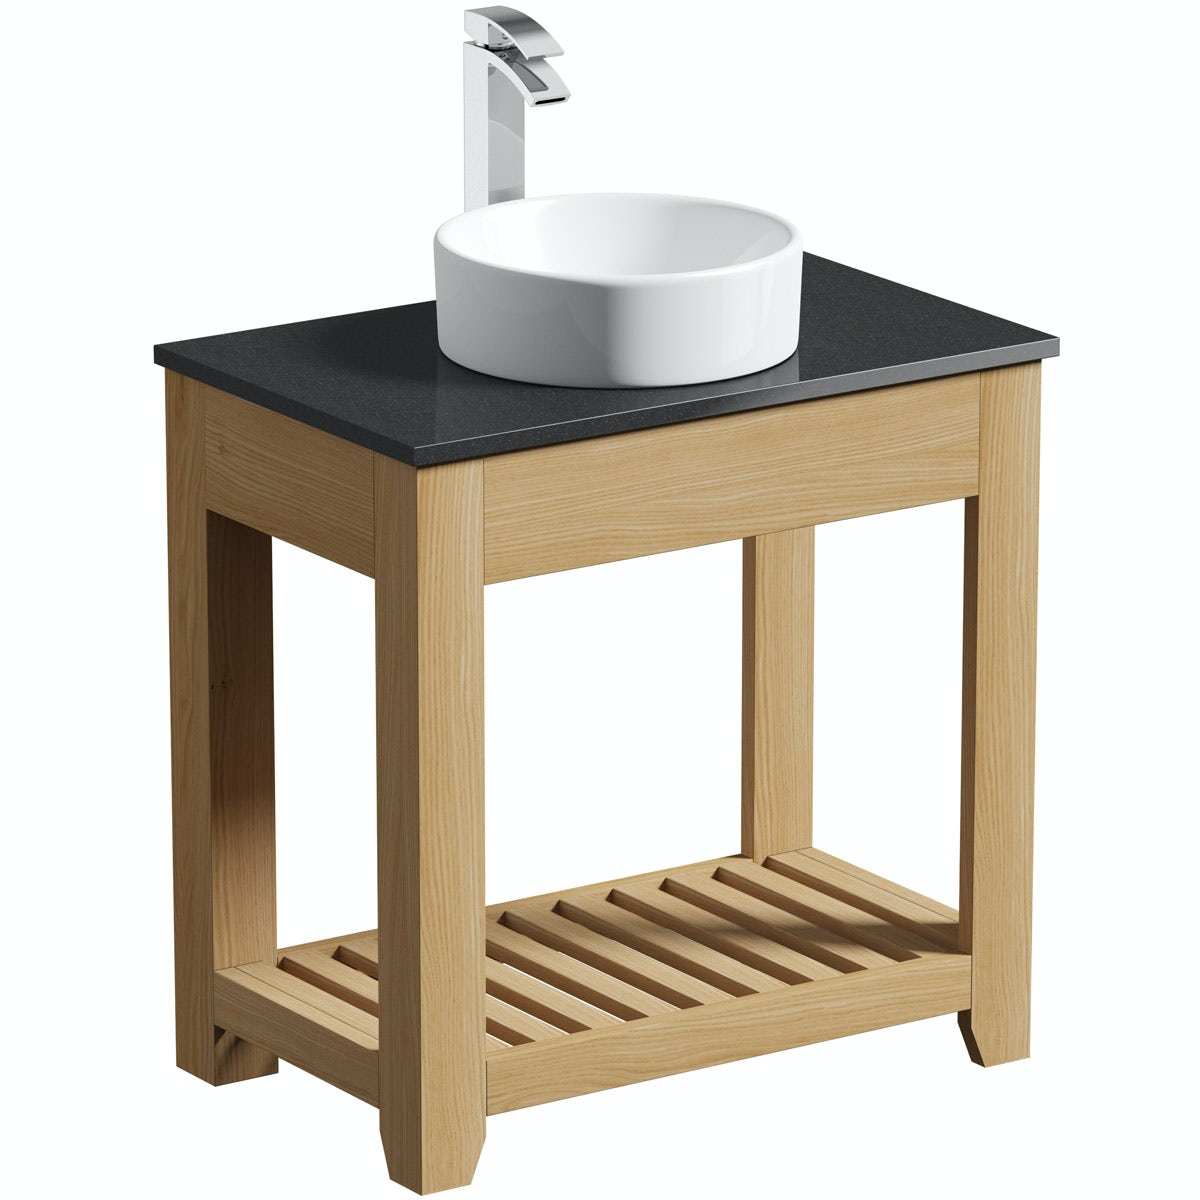 The Bath Co. Hoxton oak washstand with black marble top and Calhoun basin 800mm